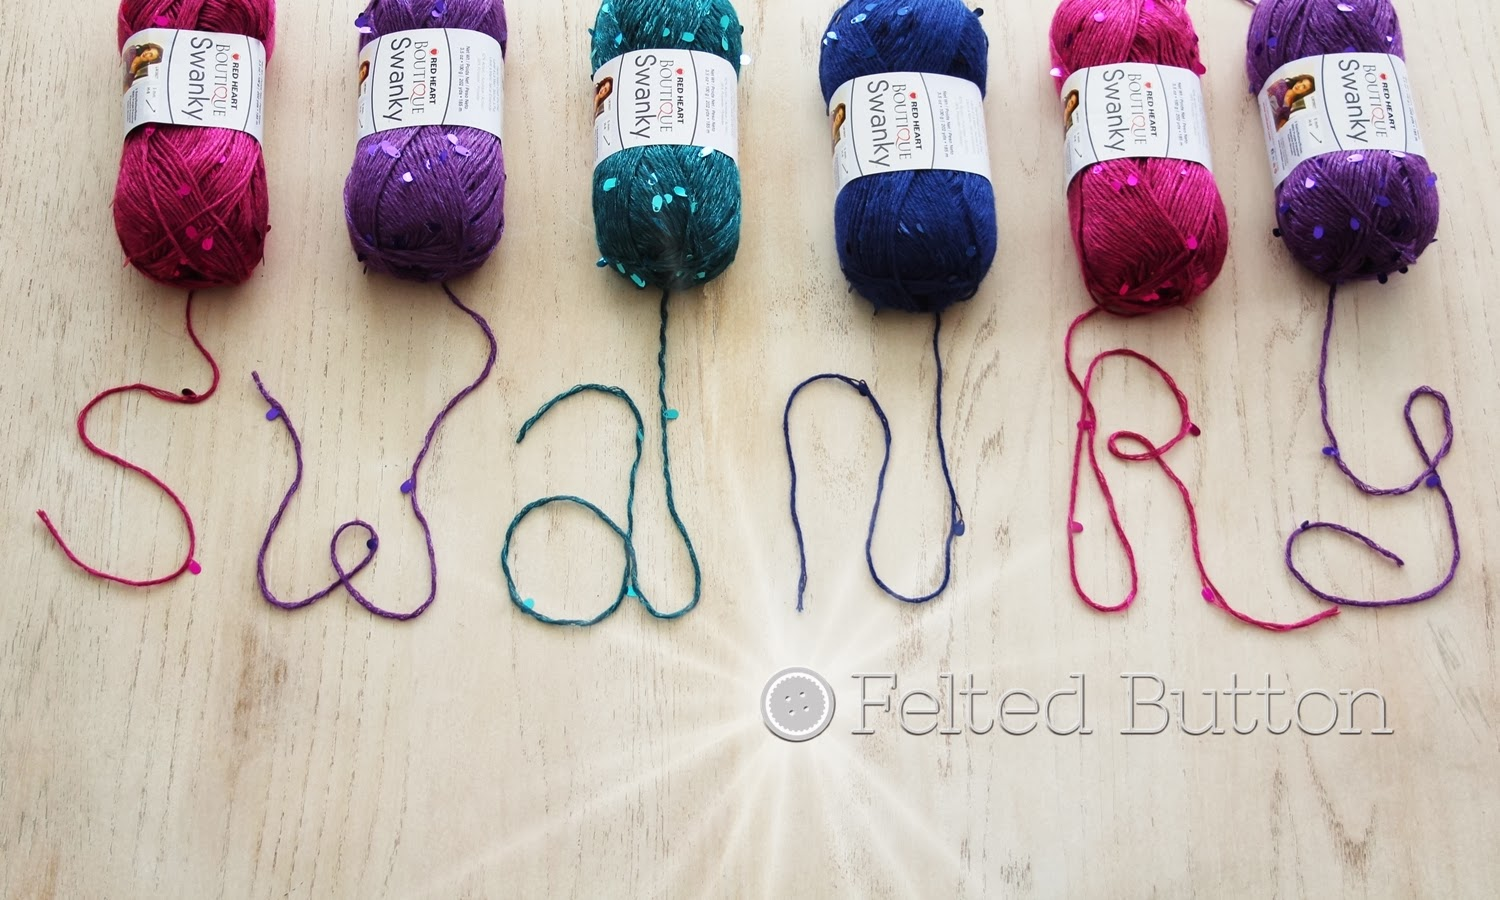 Felted Button Swanky Yarn